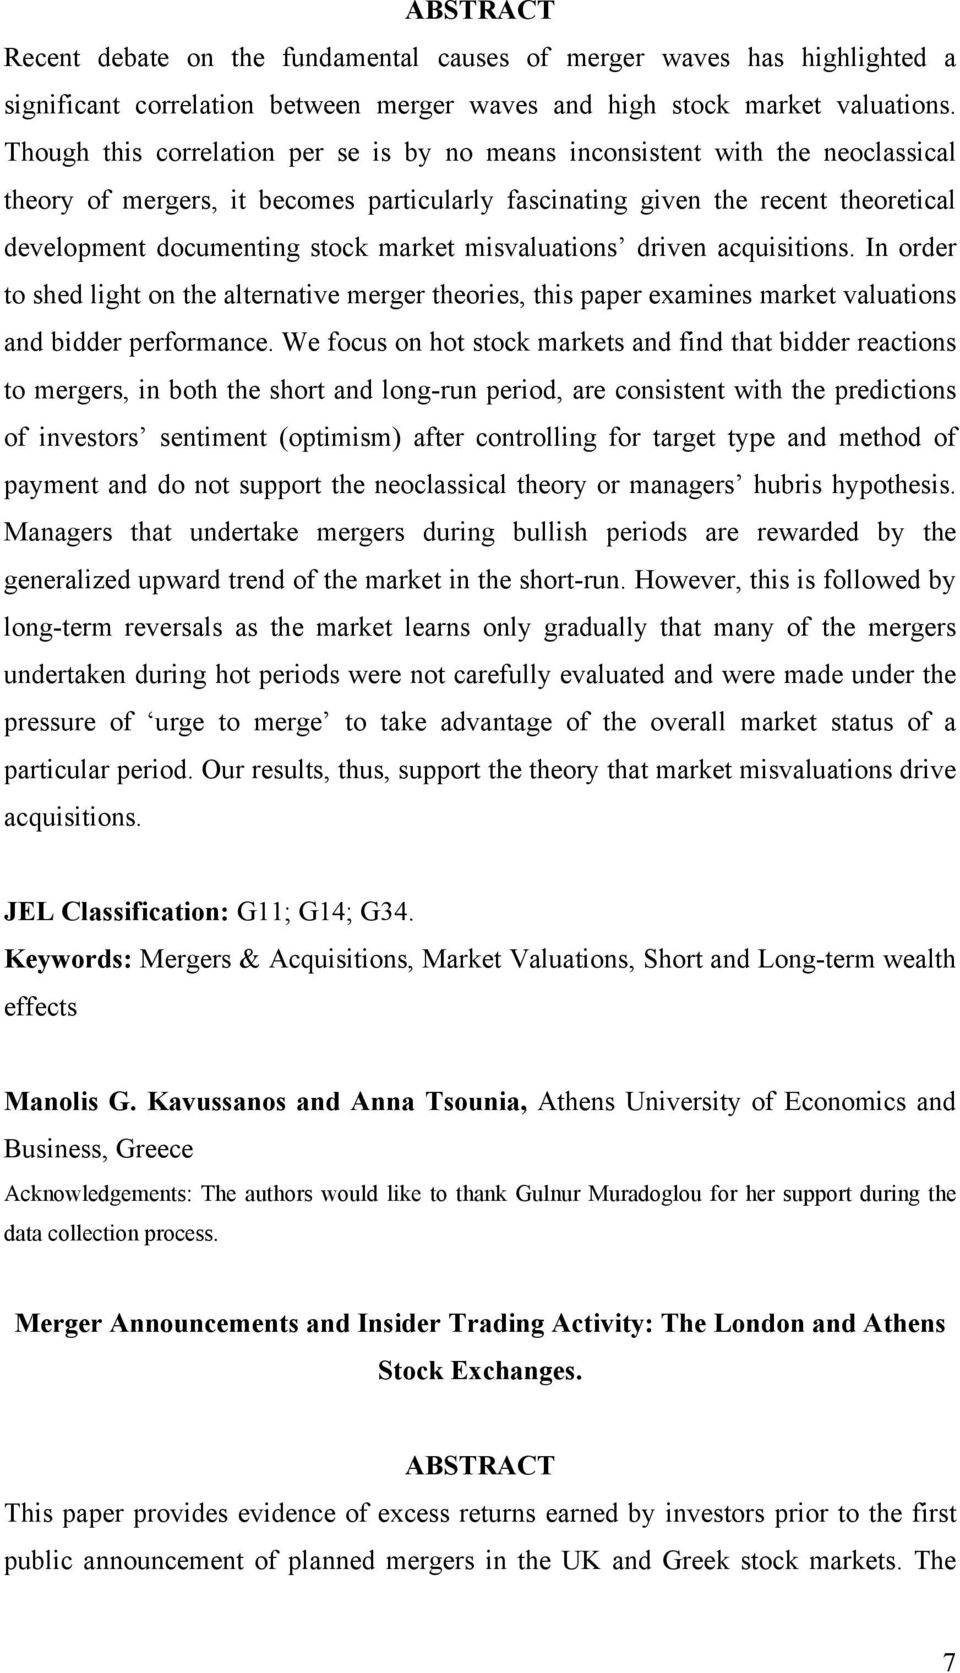 market misvaluations driven acquisitions. In order to shed light on the alternative merger theories, this paper examines market valuations and bidder performance.